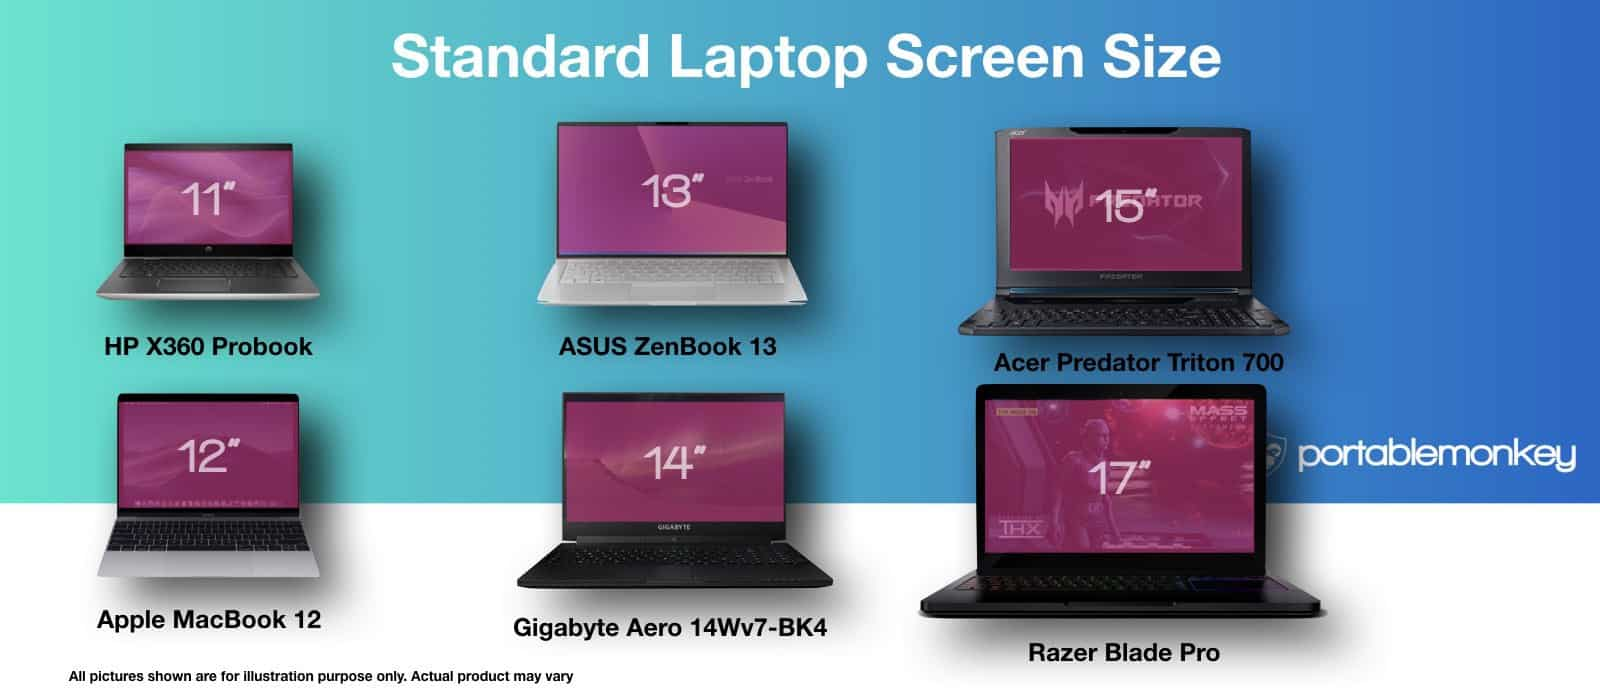 standard laptop screen size.001